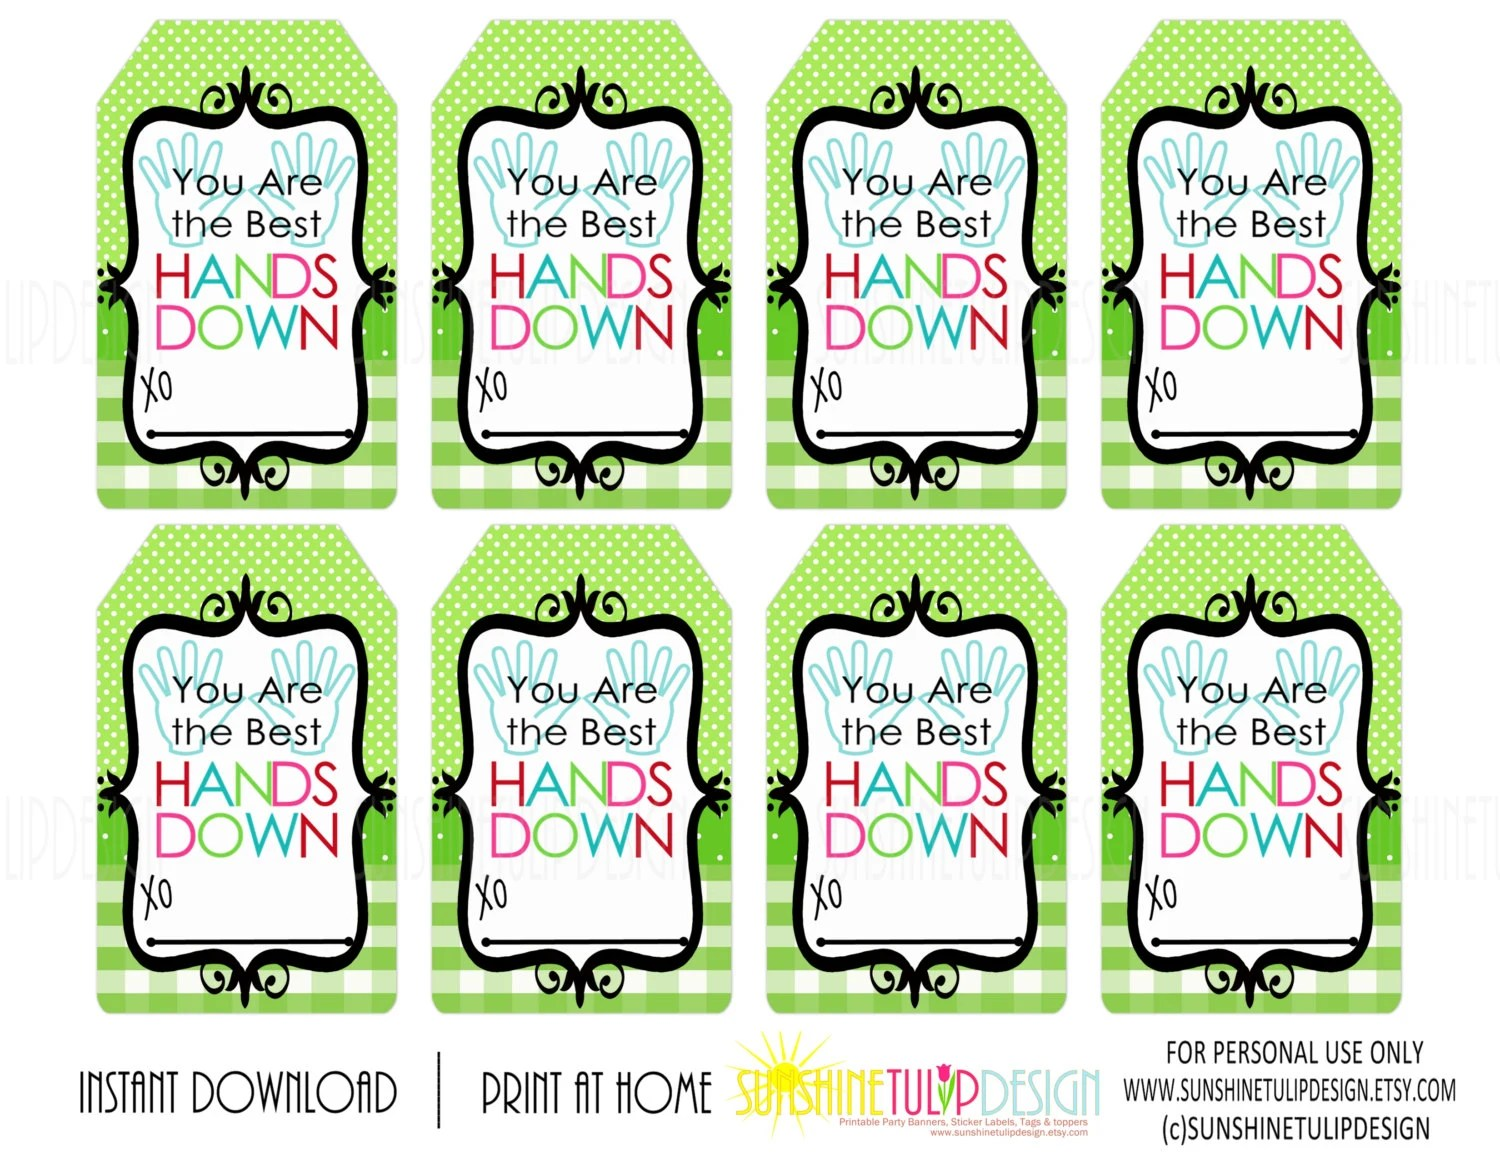 You are the Best HANDS DOWN Printable Gift Tags Buffalo Plaid